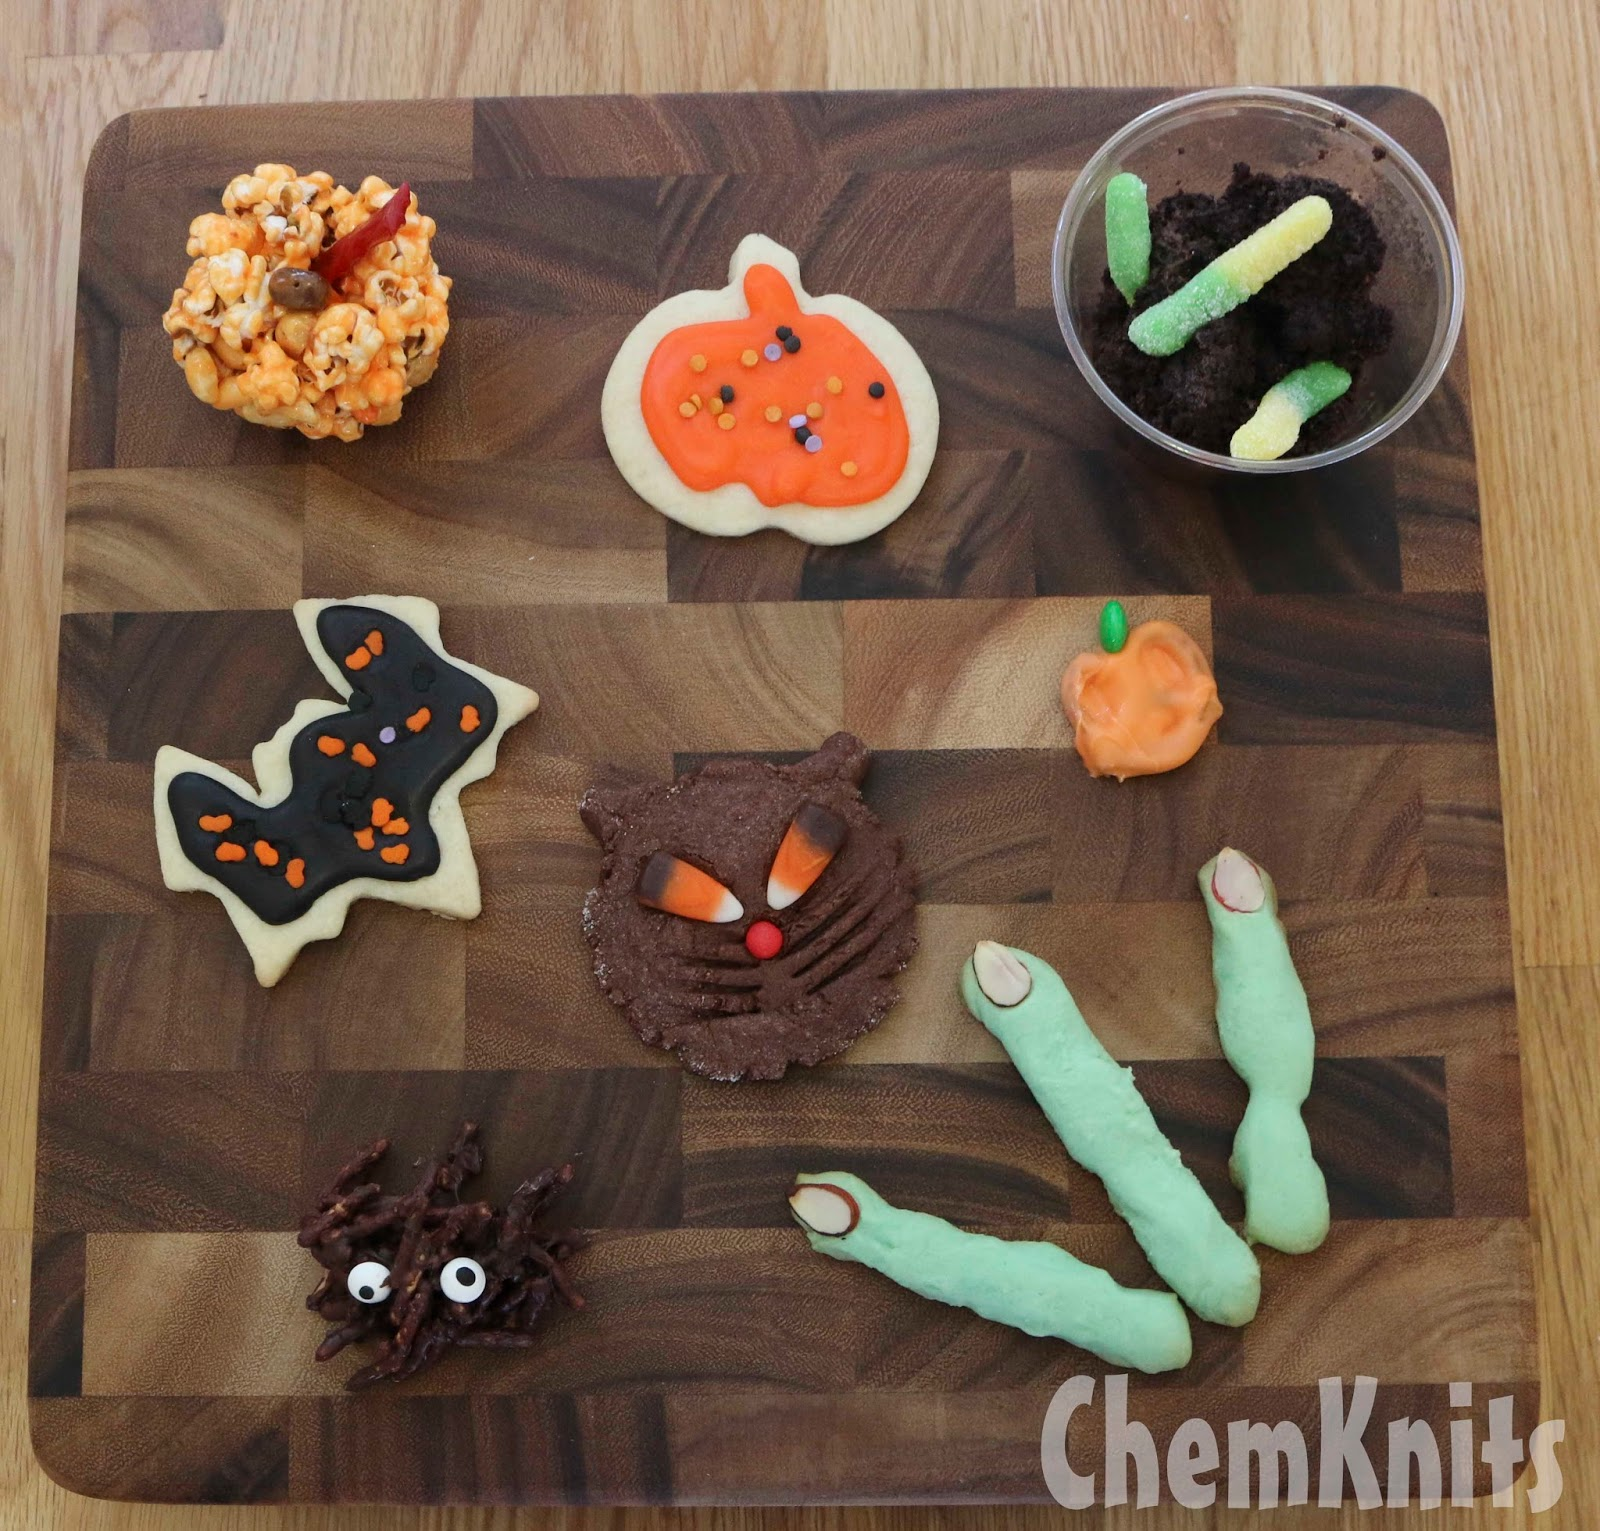 ChemKnits: Halloween Party Food